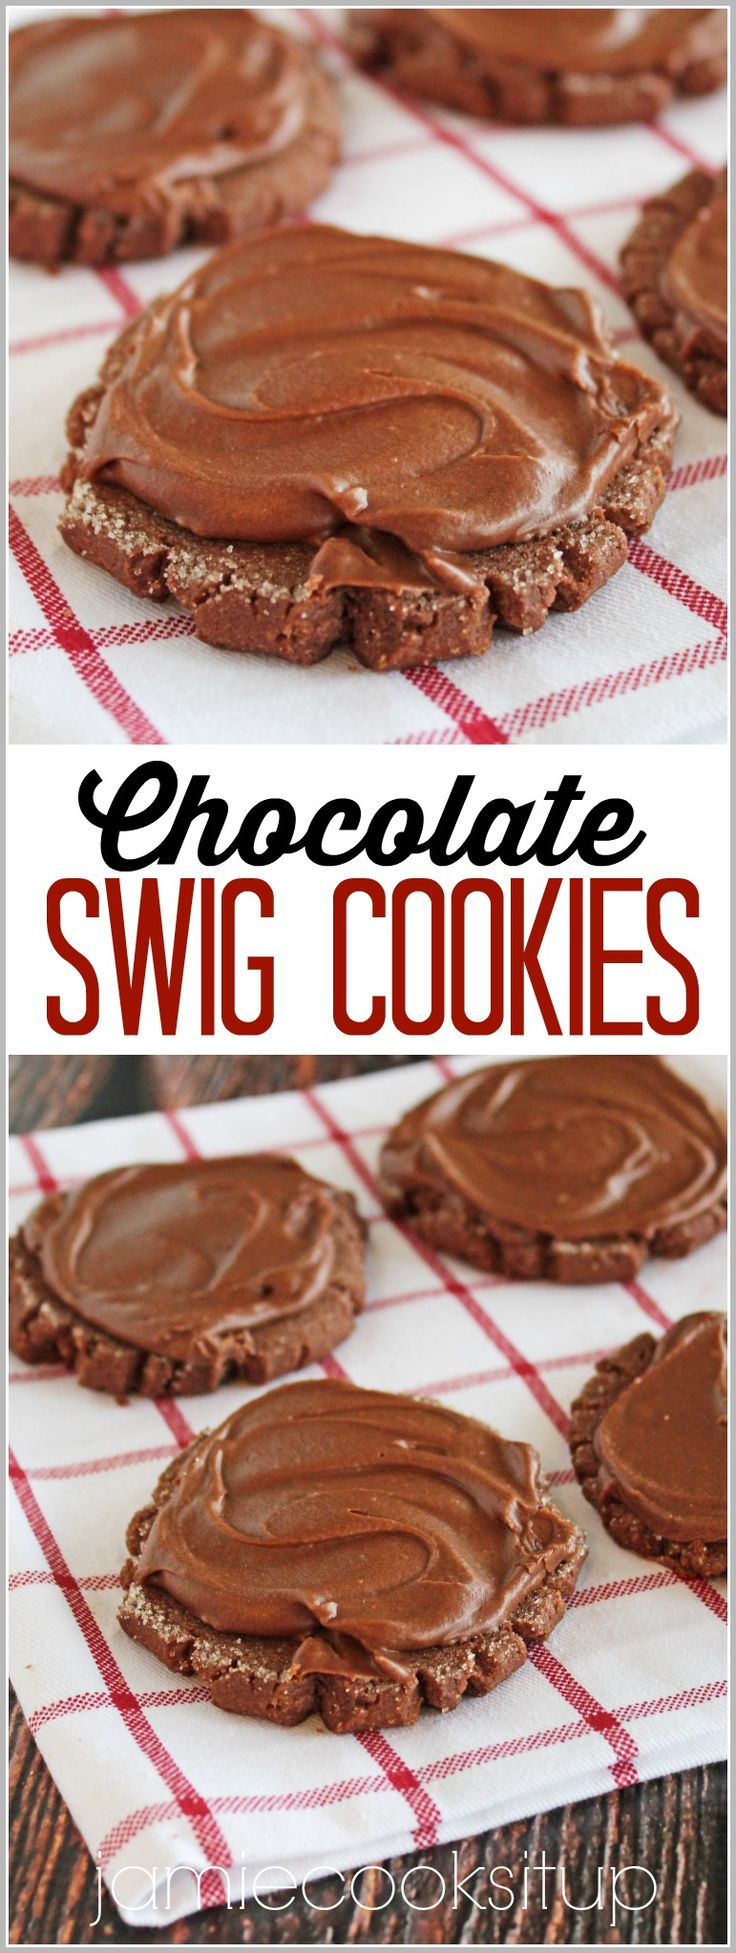 Are you a fan of Swig Sugar Cookies? They are really all the rage in Utah right now! Little Soda and Cookie Shops are popping up all over the place that feature specialty sodas and a variety of ama…